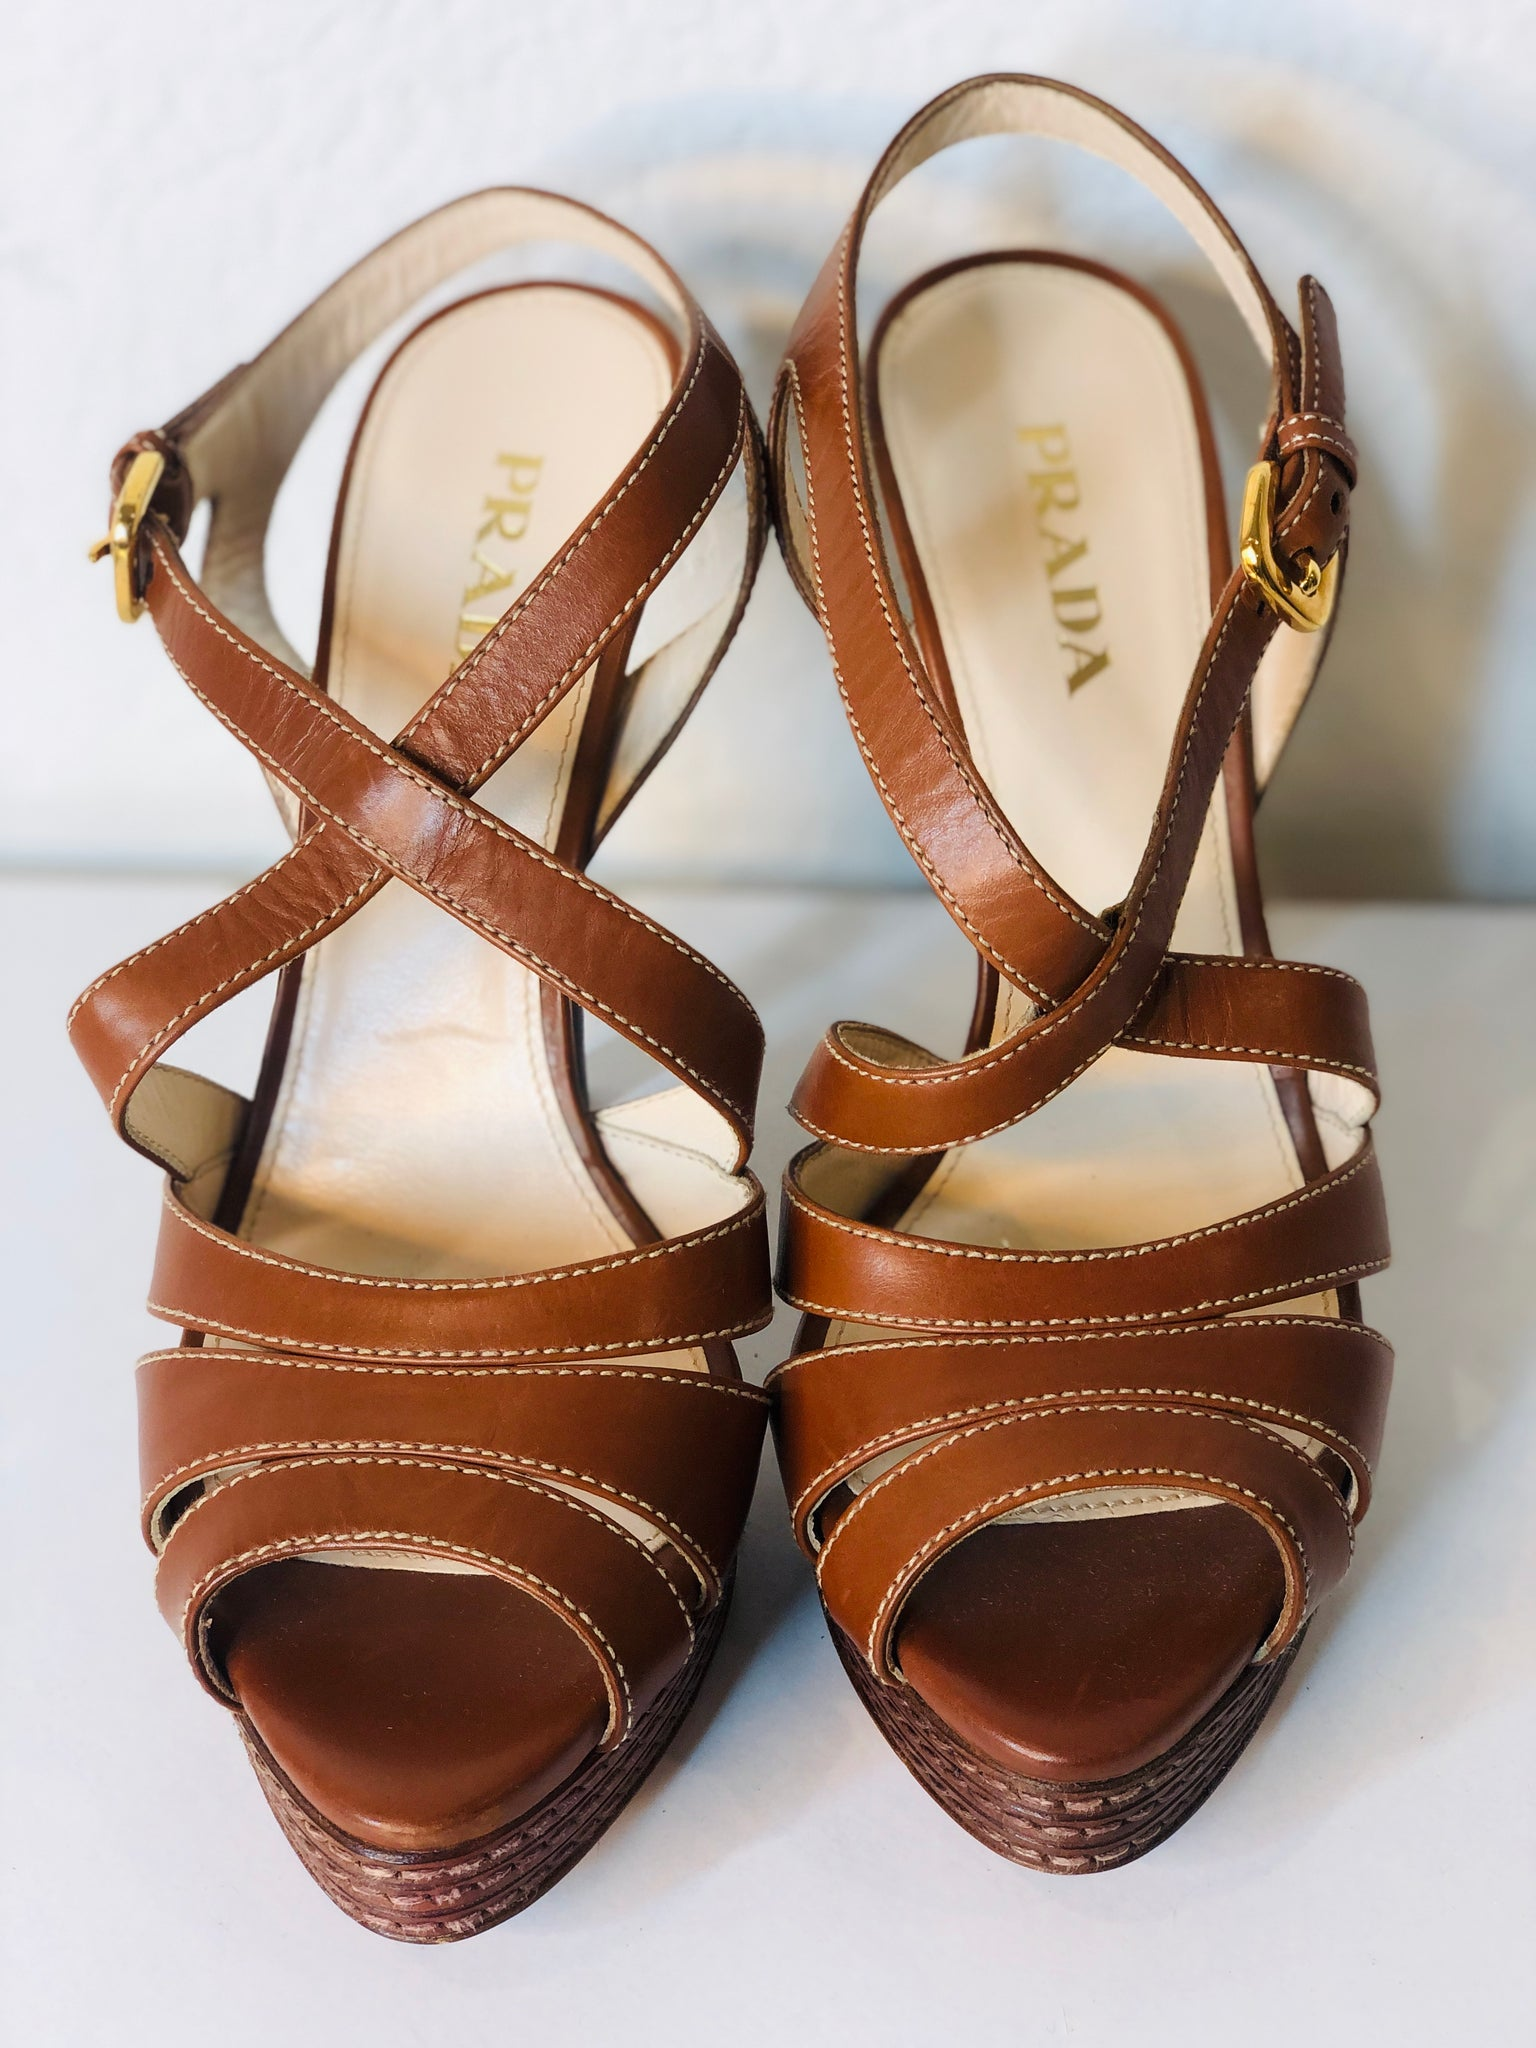 Prada Strappy Brown Leather Sandals Size 39